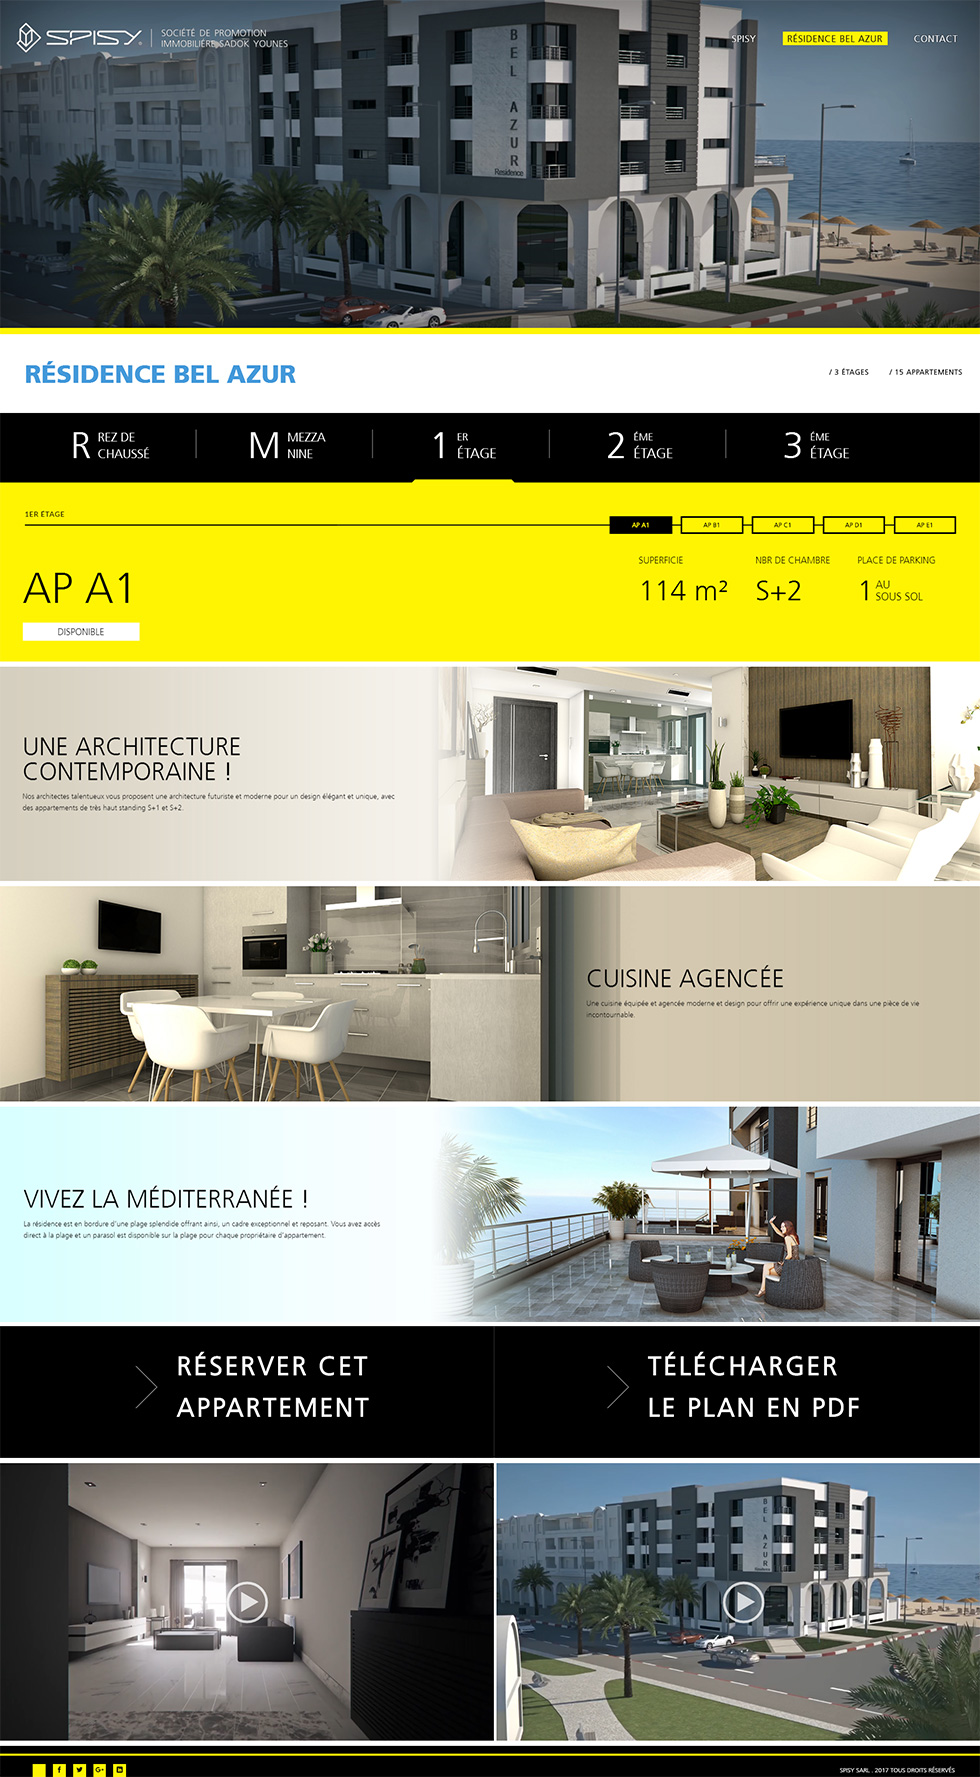 Webdesign Corporate, Spisy Promoteur Immobilier